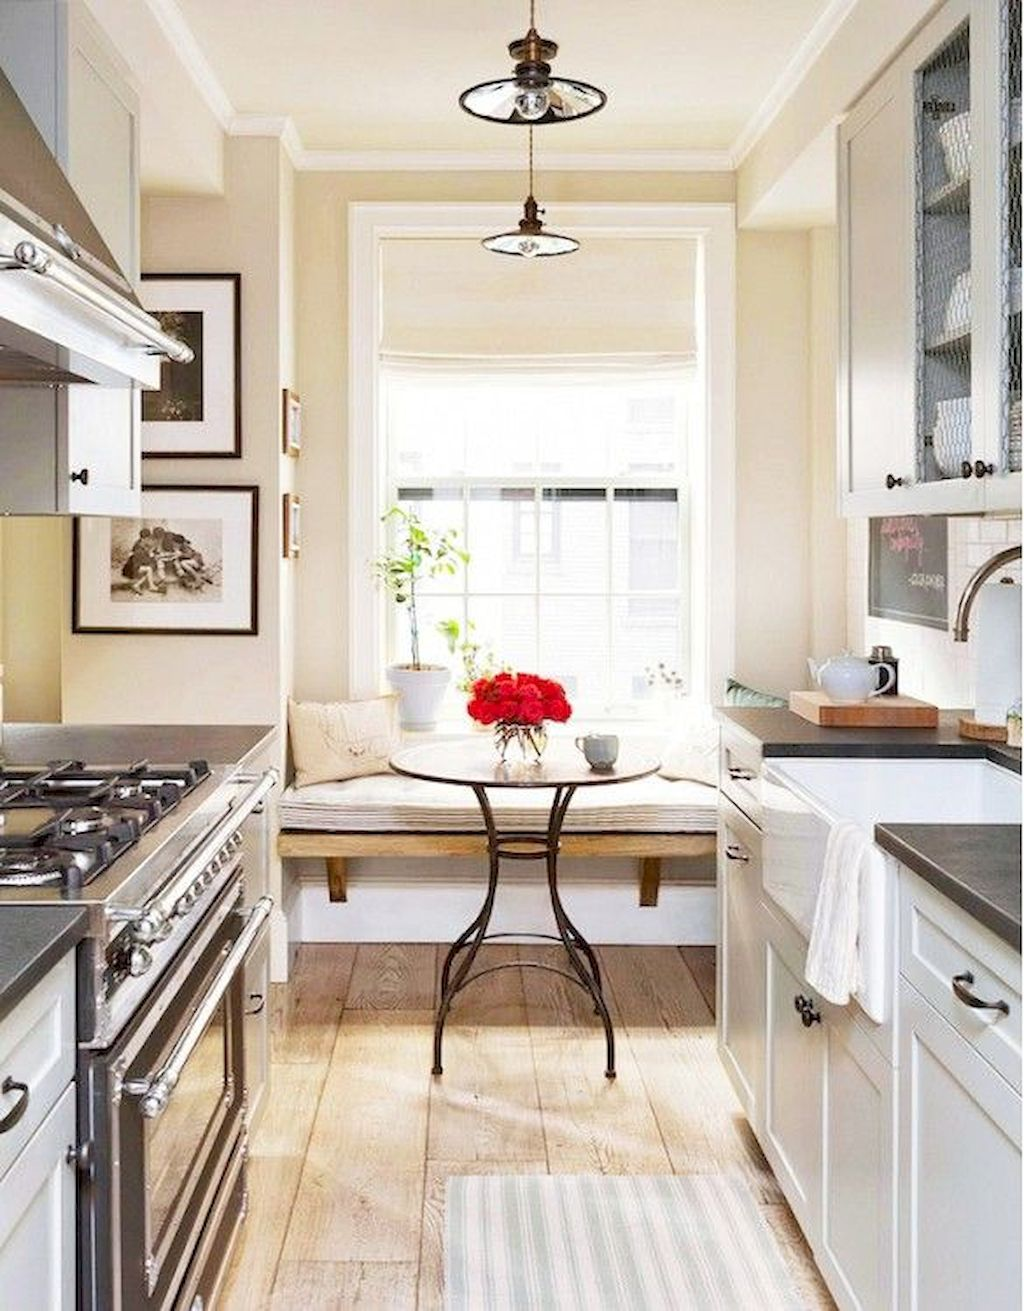 60+ Galley Kitchens Inspirations: Planning Tips and Gallery ...